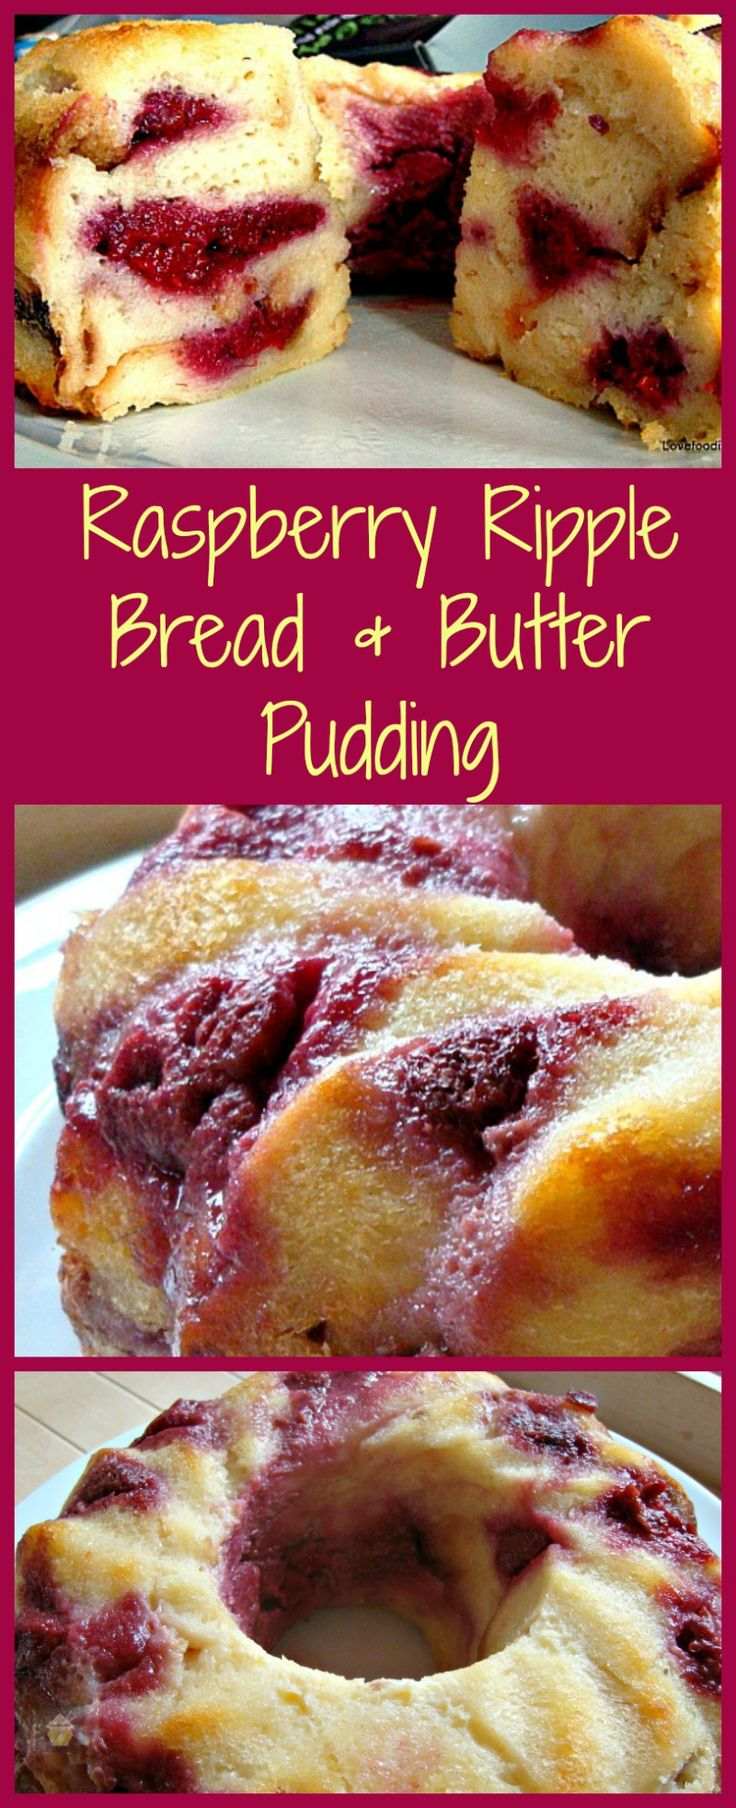 Raspberry Ripple Bread and Butter Pudding. A wonderful dessert, best served warm with a blob of ice cream, whipped cream, or both! Similar to French Toast only much fluffier.